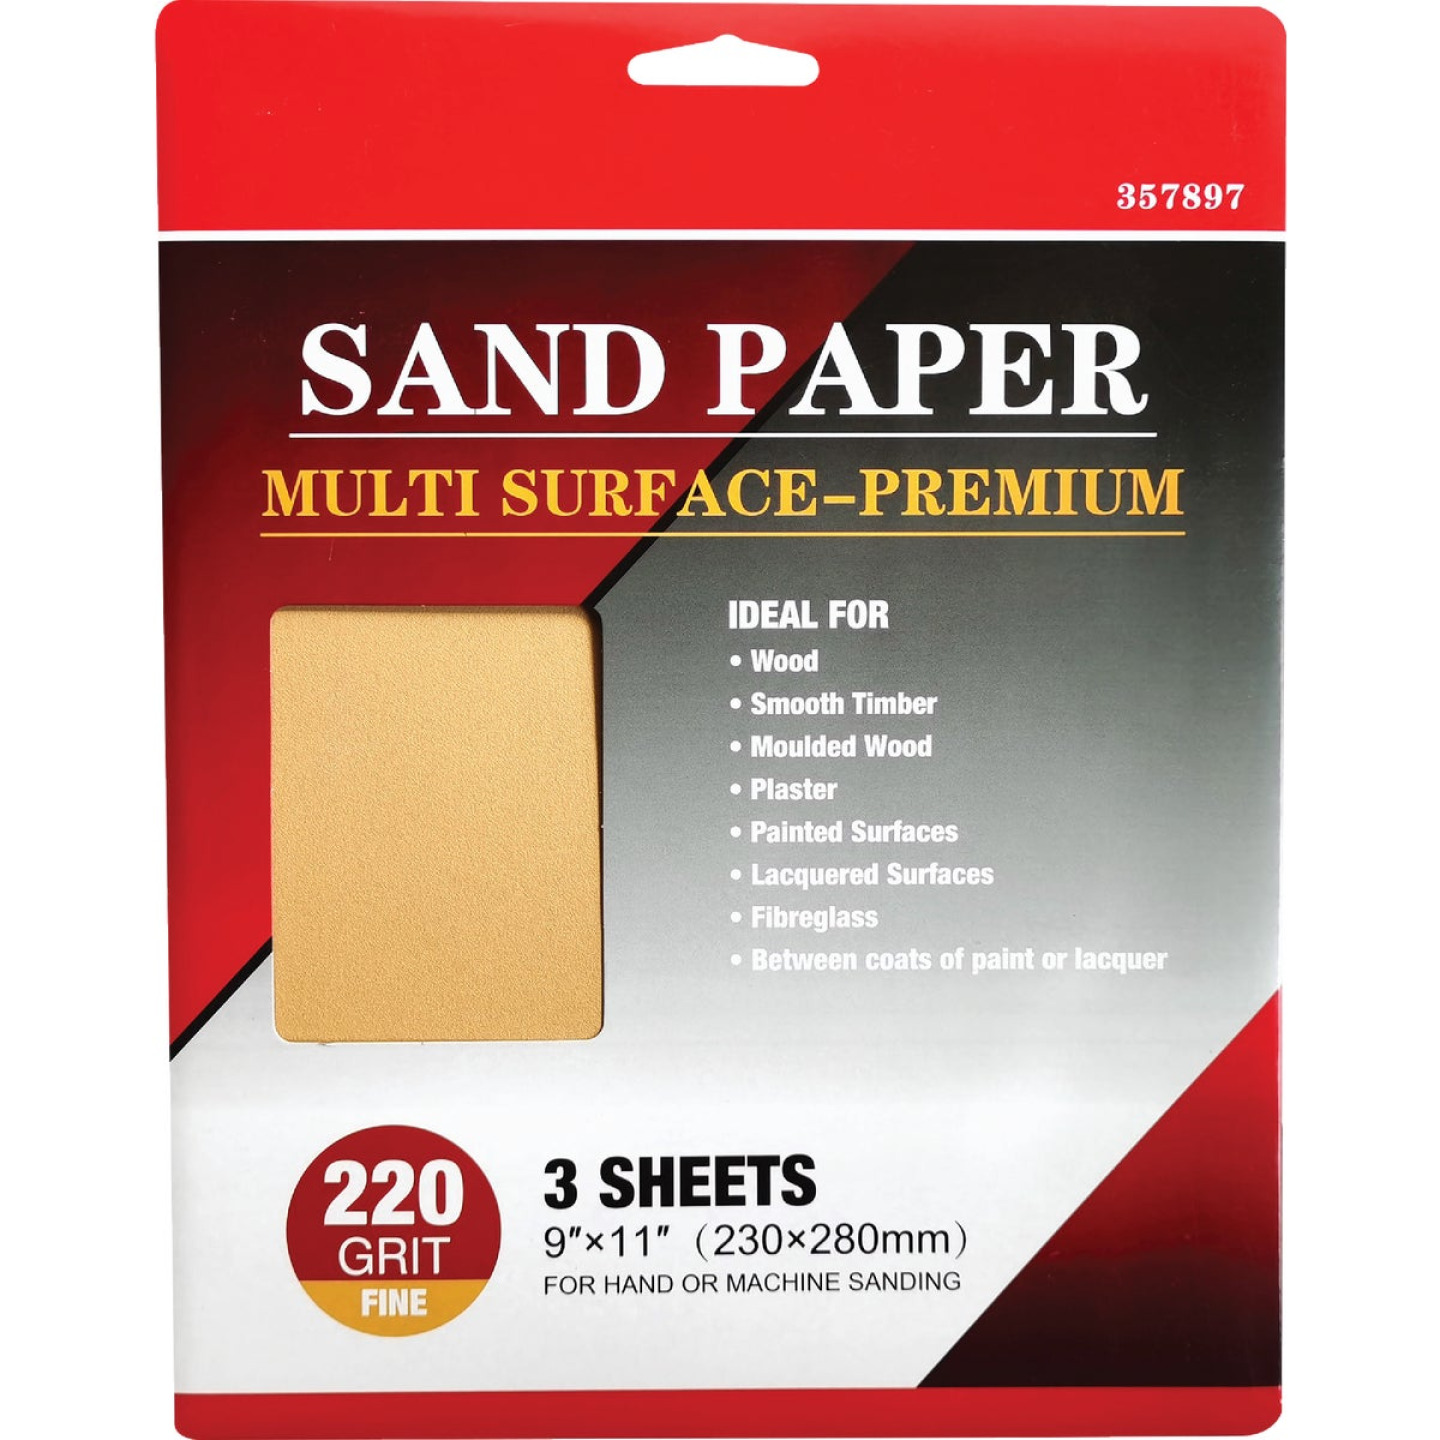 Boss Premium 9 In. x 11 In. 180 Grit Medium Sandpaper (3-Pack) Image 1